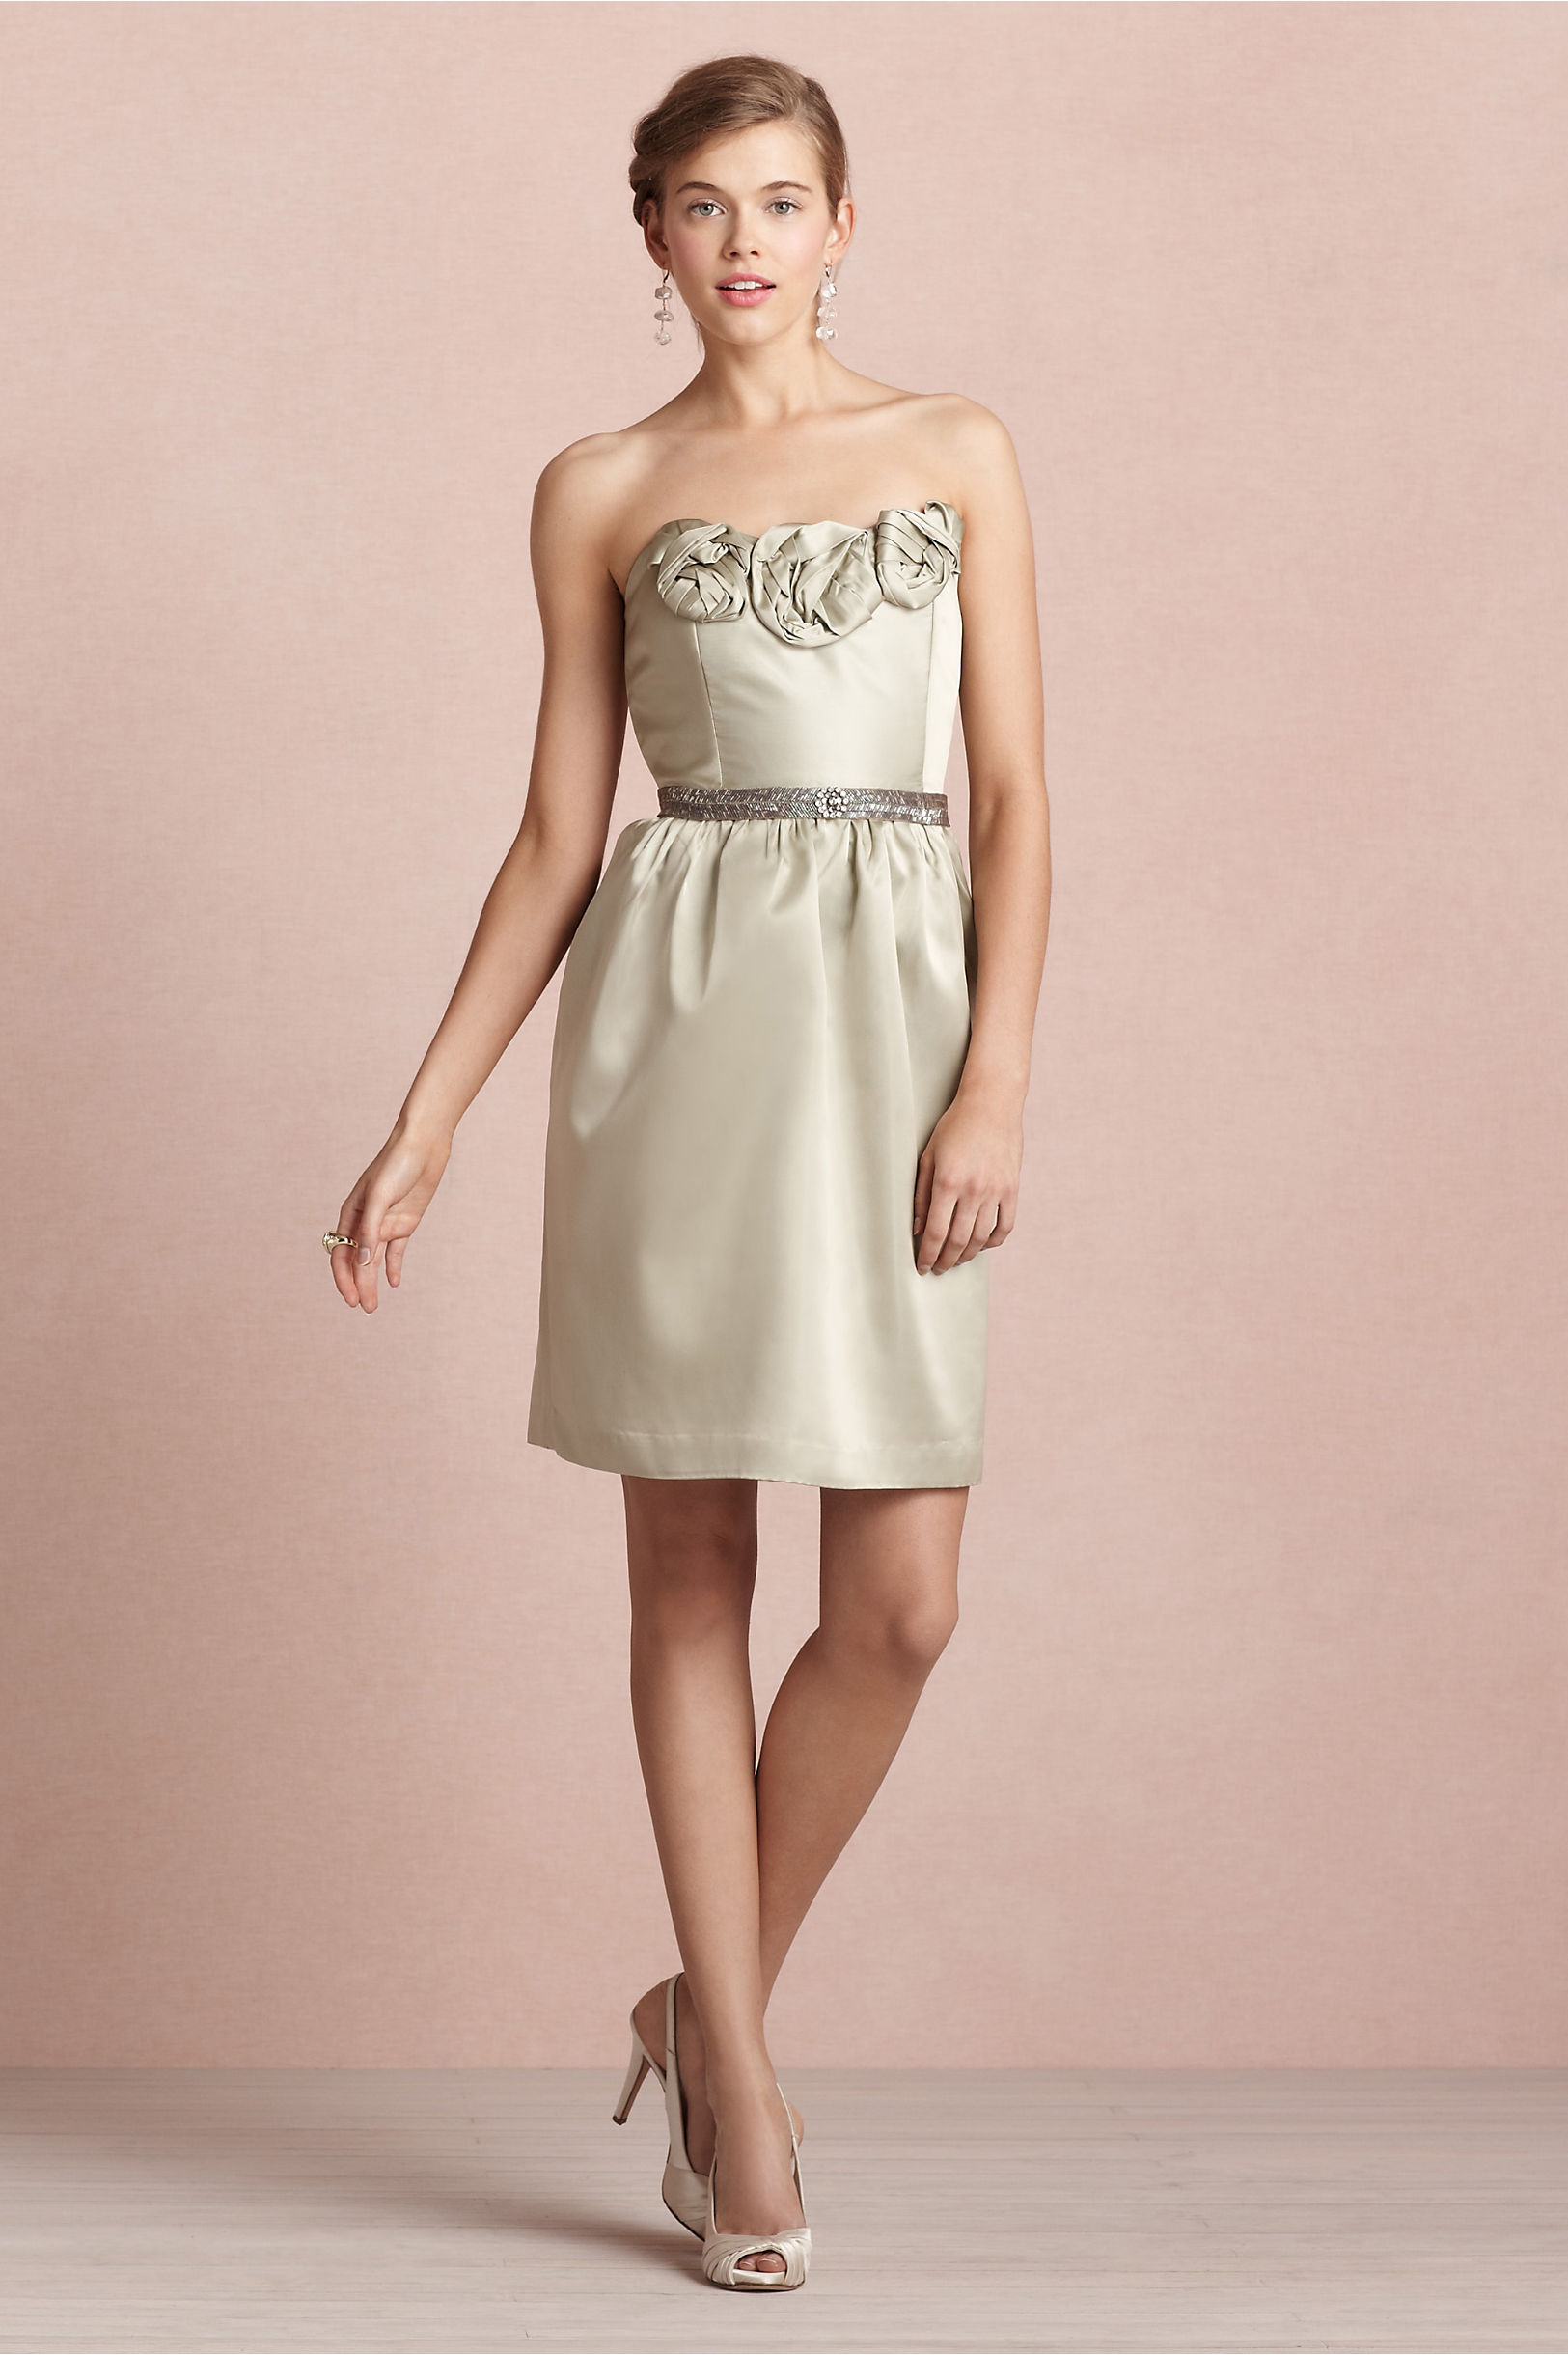 Covetable-bridesmaid-dresses-from-bhldn-2013-bridal-party-style-champagne.original